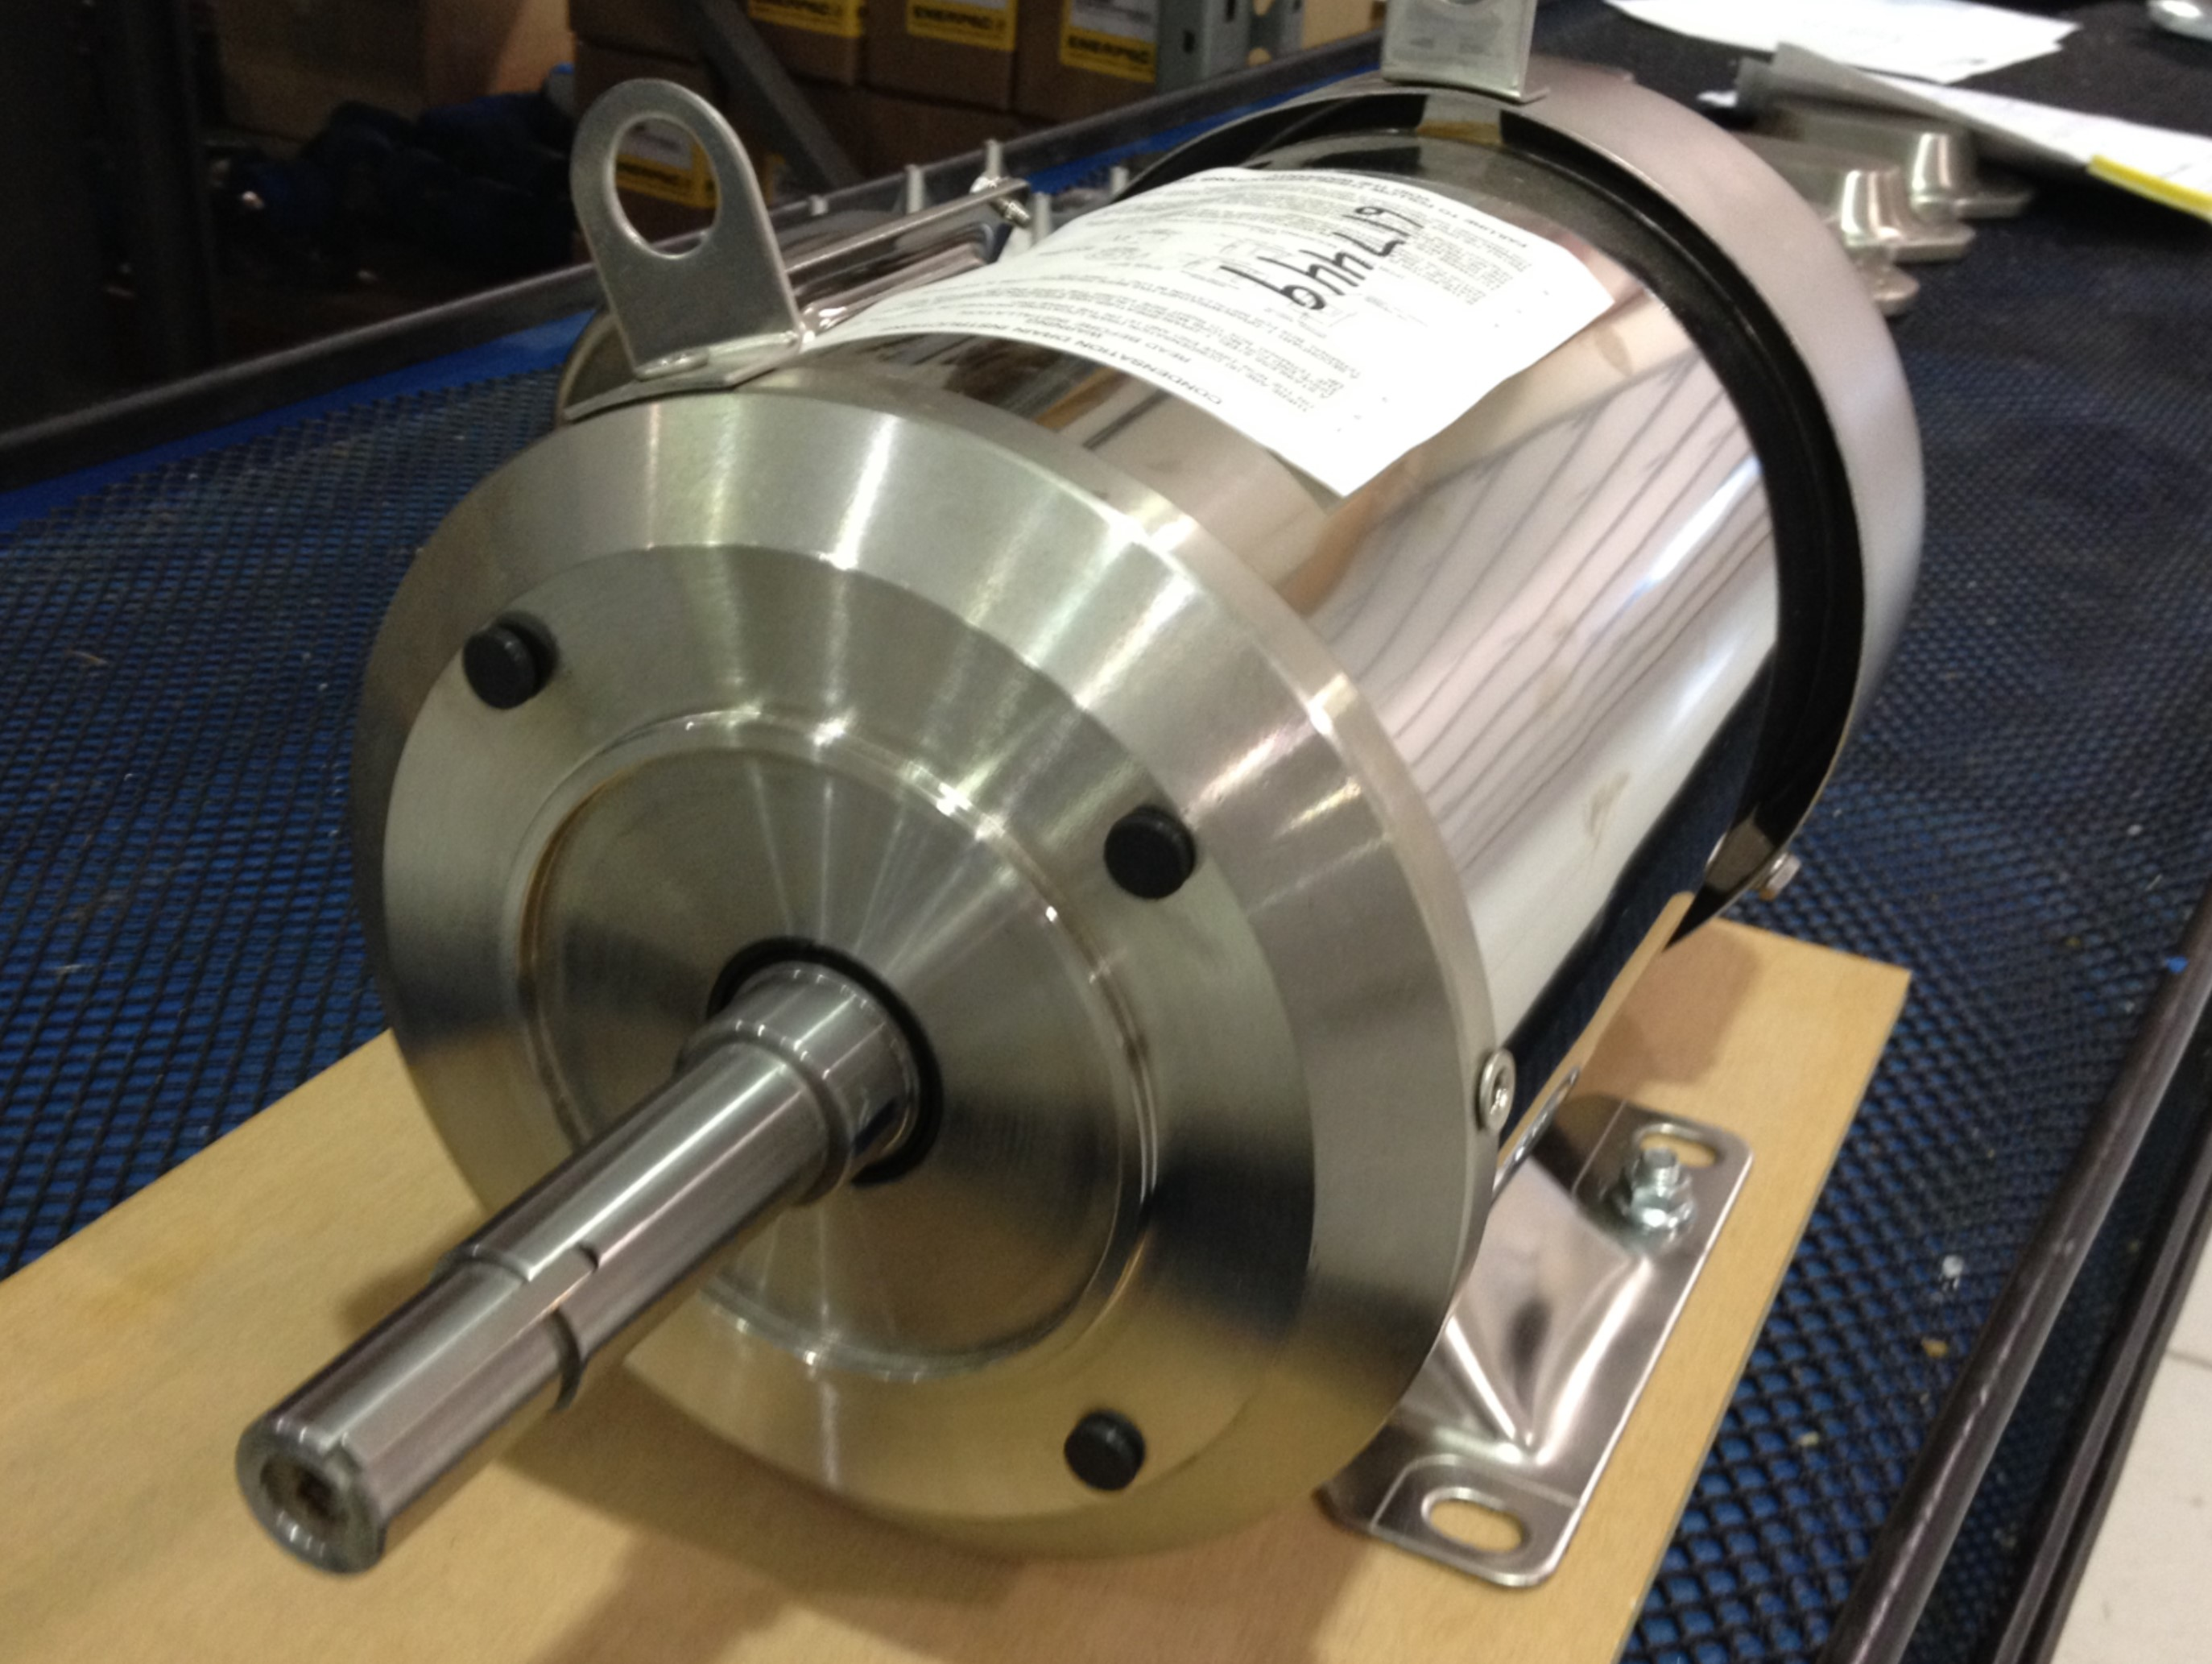 What Is A Jm Frame Motor Why Is It Better For Sanitary